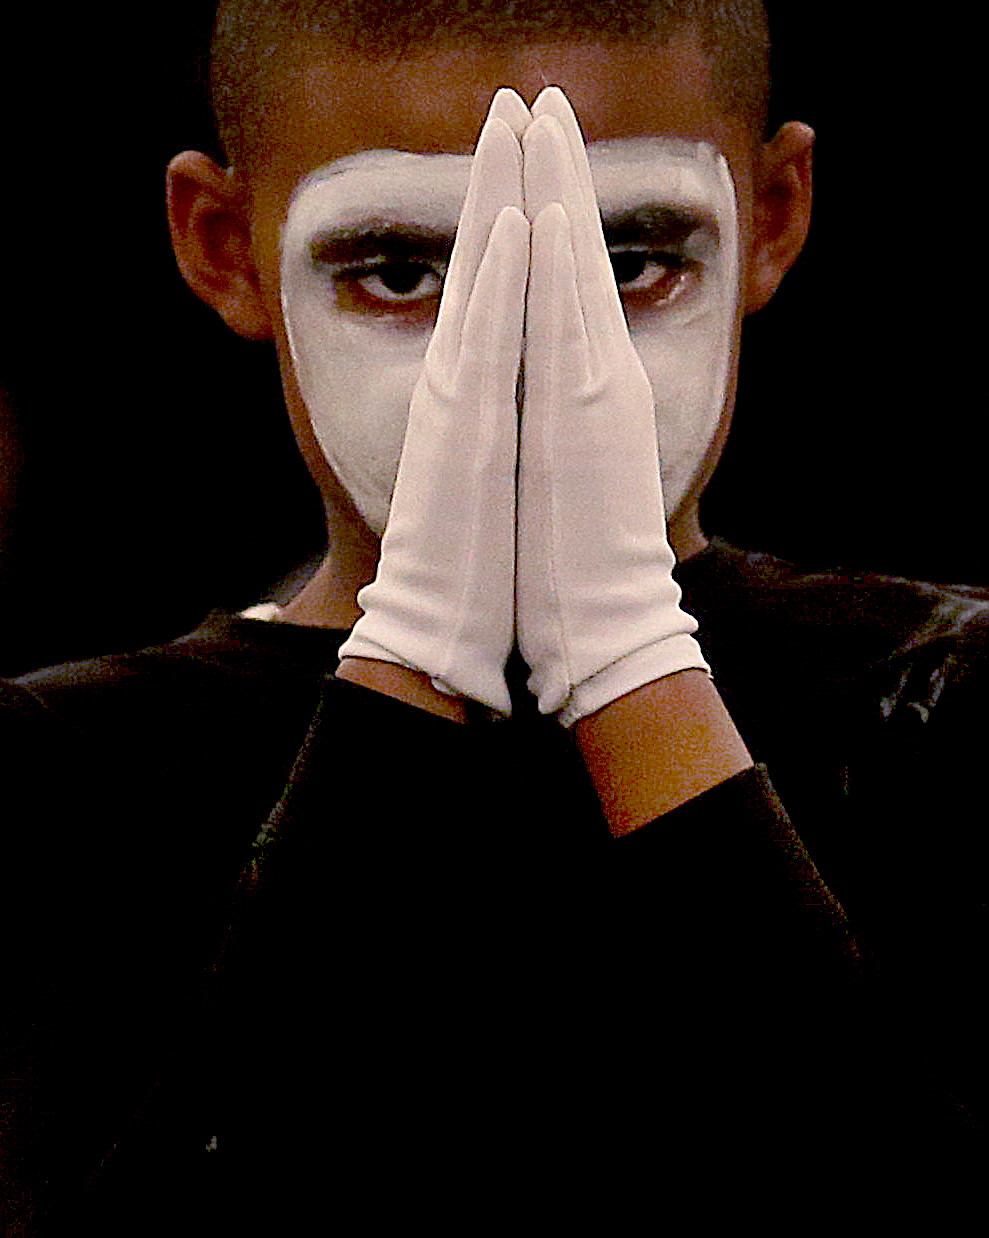 A young Mime Ministry member clasps his hands in prayer while performing. David Spencer/The State Journal-Register